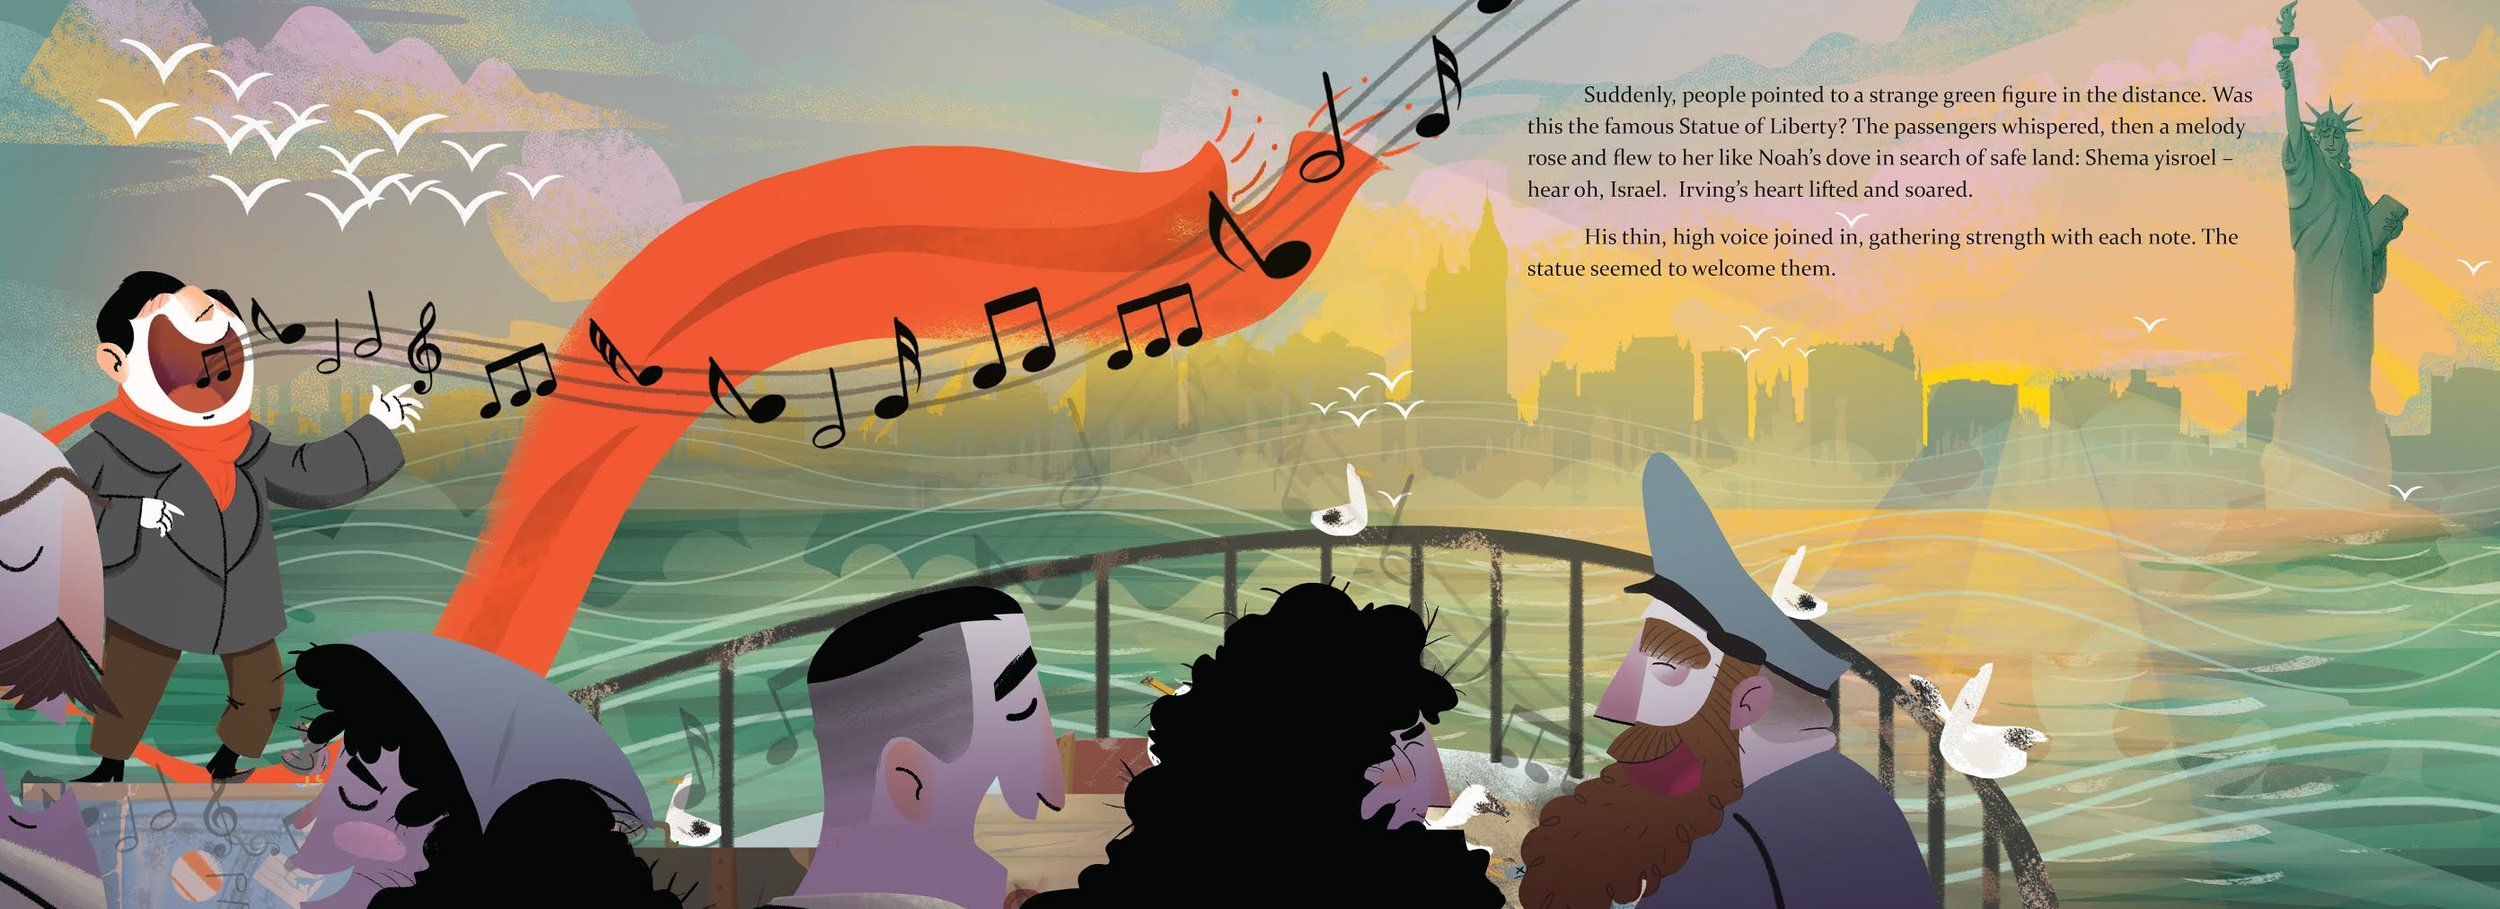 """Irving Berlin, the Immigrant Boy Who Made America Sing"" by Nancy Churnin, illustrated by James Rey Sanchez"